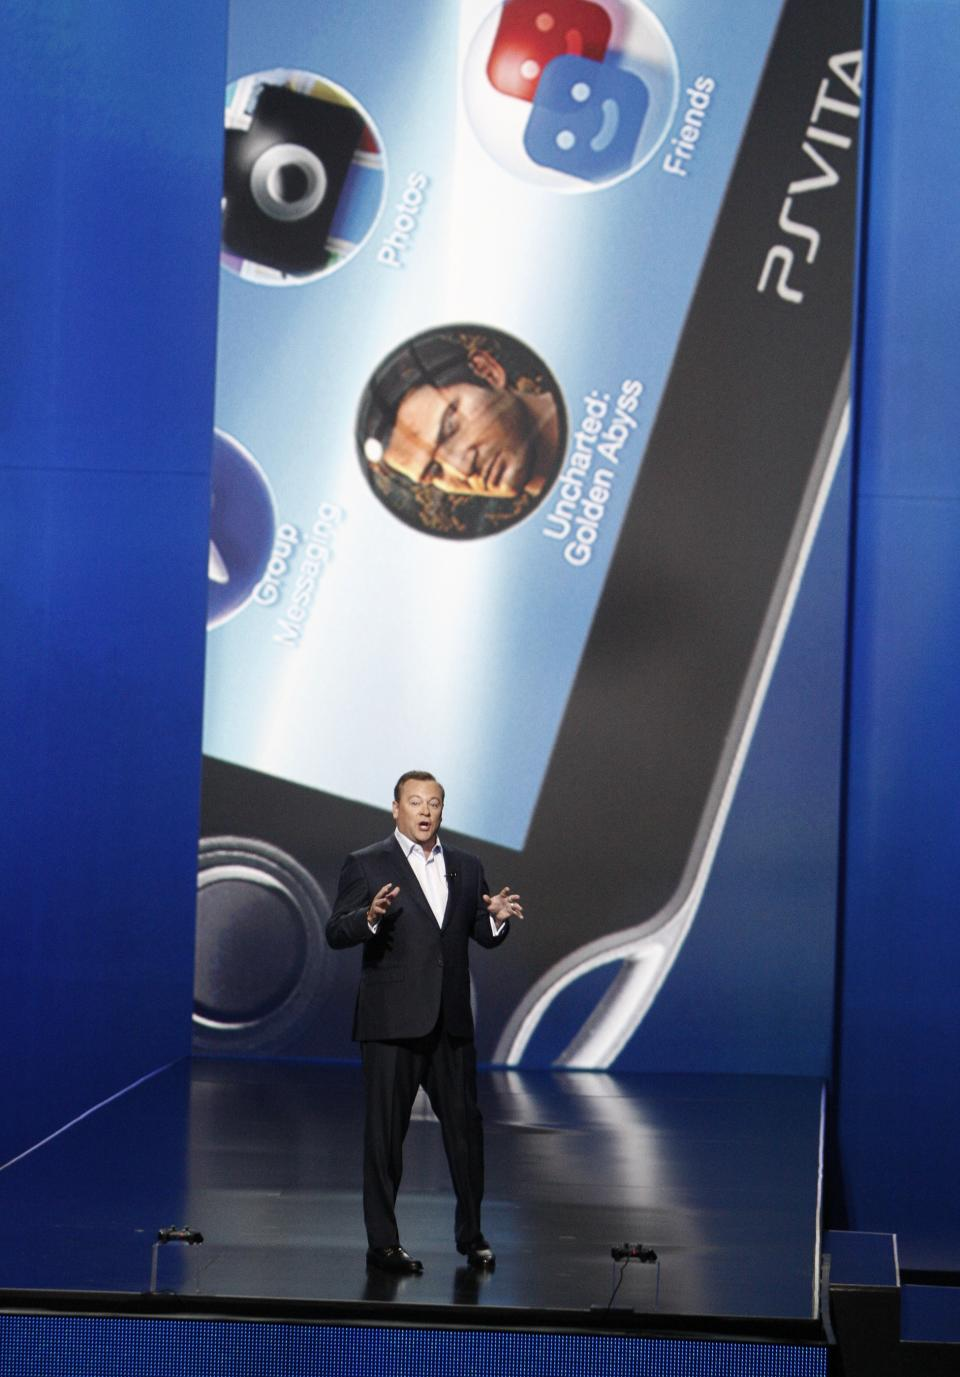 Jack Tretton, President and CEO of Sony Computer Entertainment America, speaks during the Sony Electronic Entertainment Expo (E3) news conference in Los Angeles, Monday, June 4, 2012. (AP Photo/Jason Redmond)